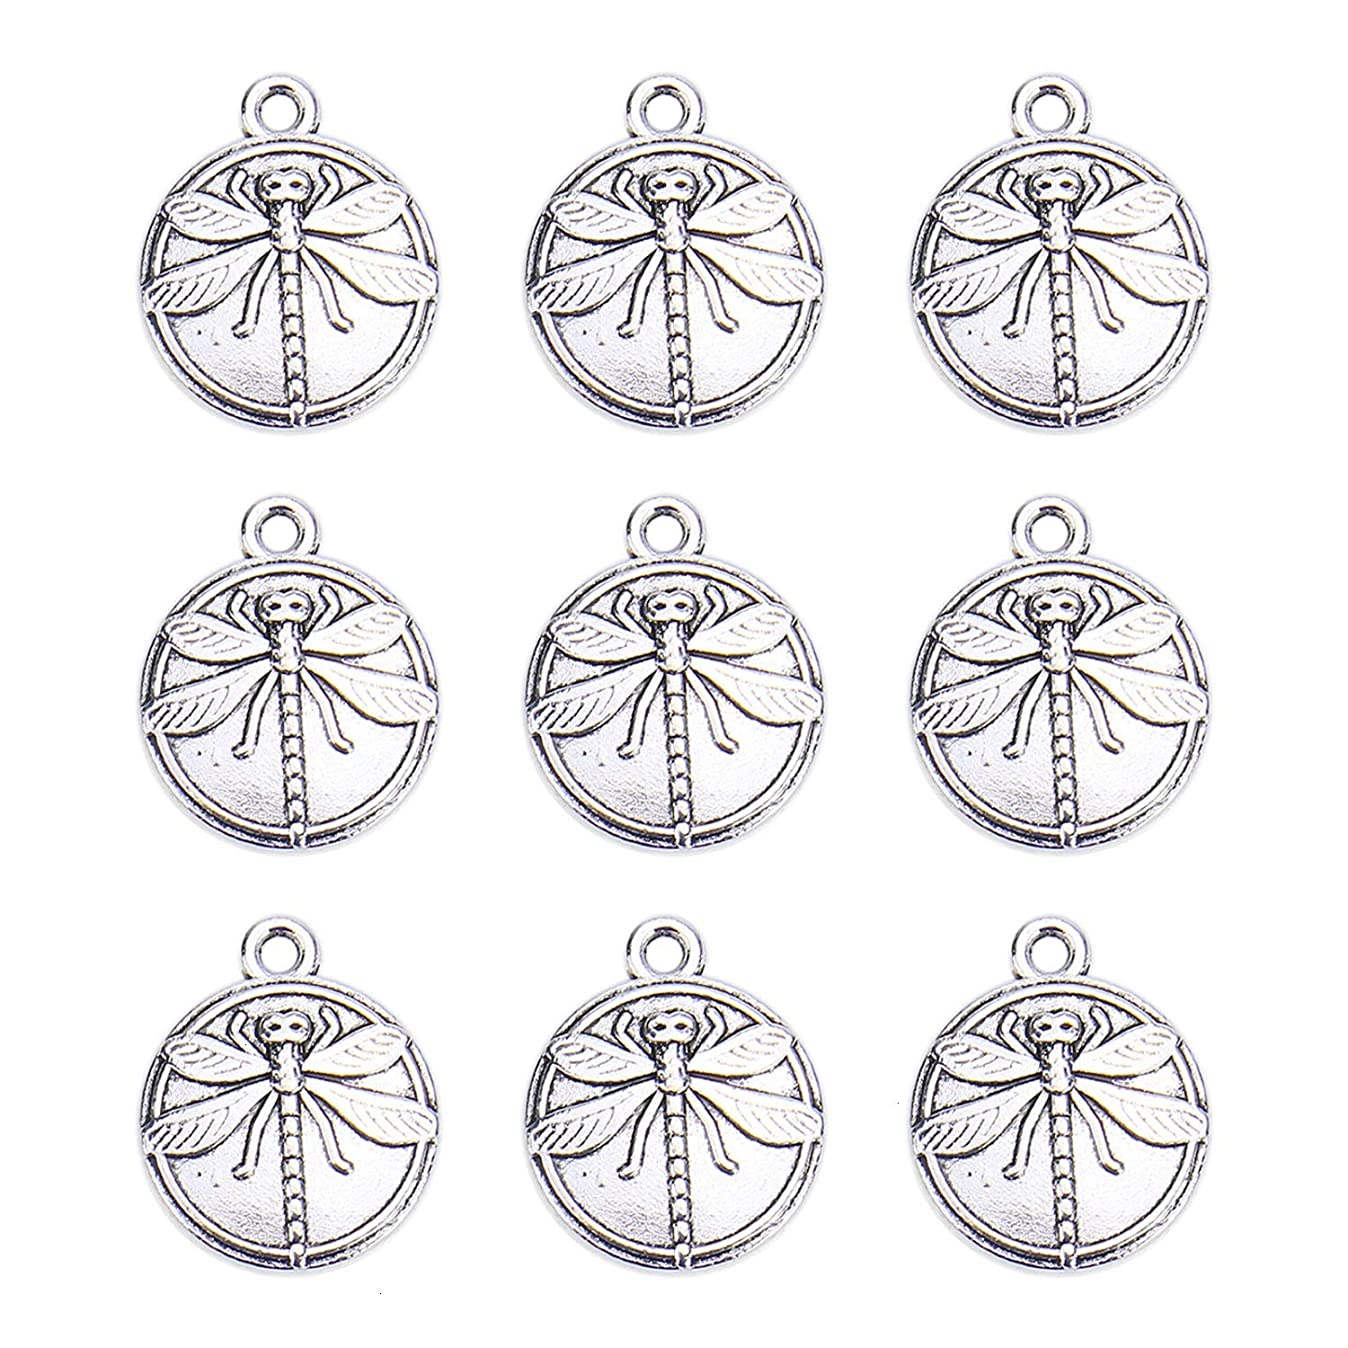 Monrocco 60 pcs Silver Dragonfly Charms 15mm v2740023907